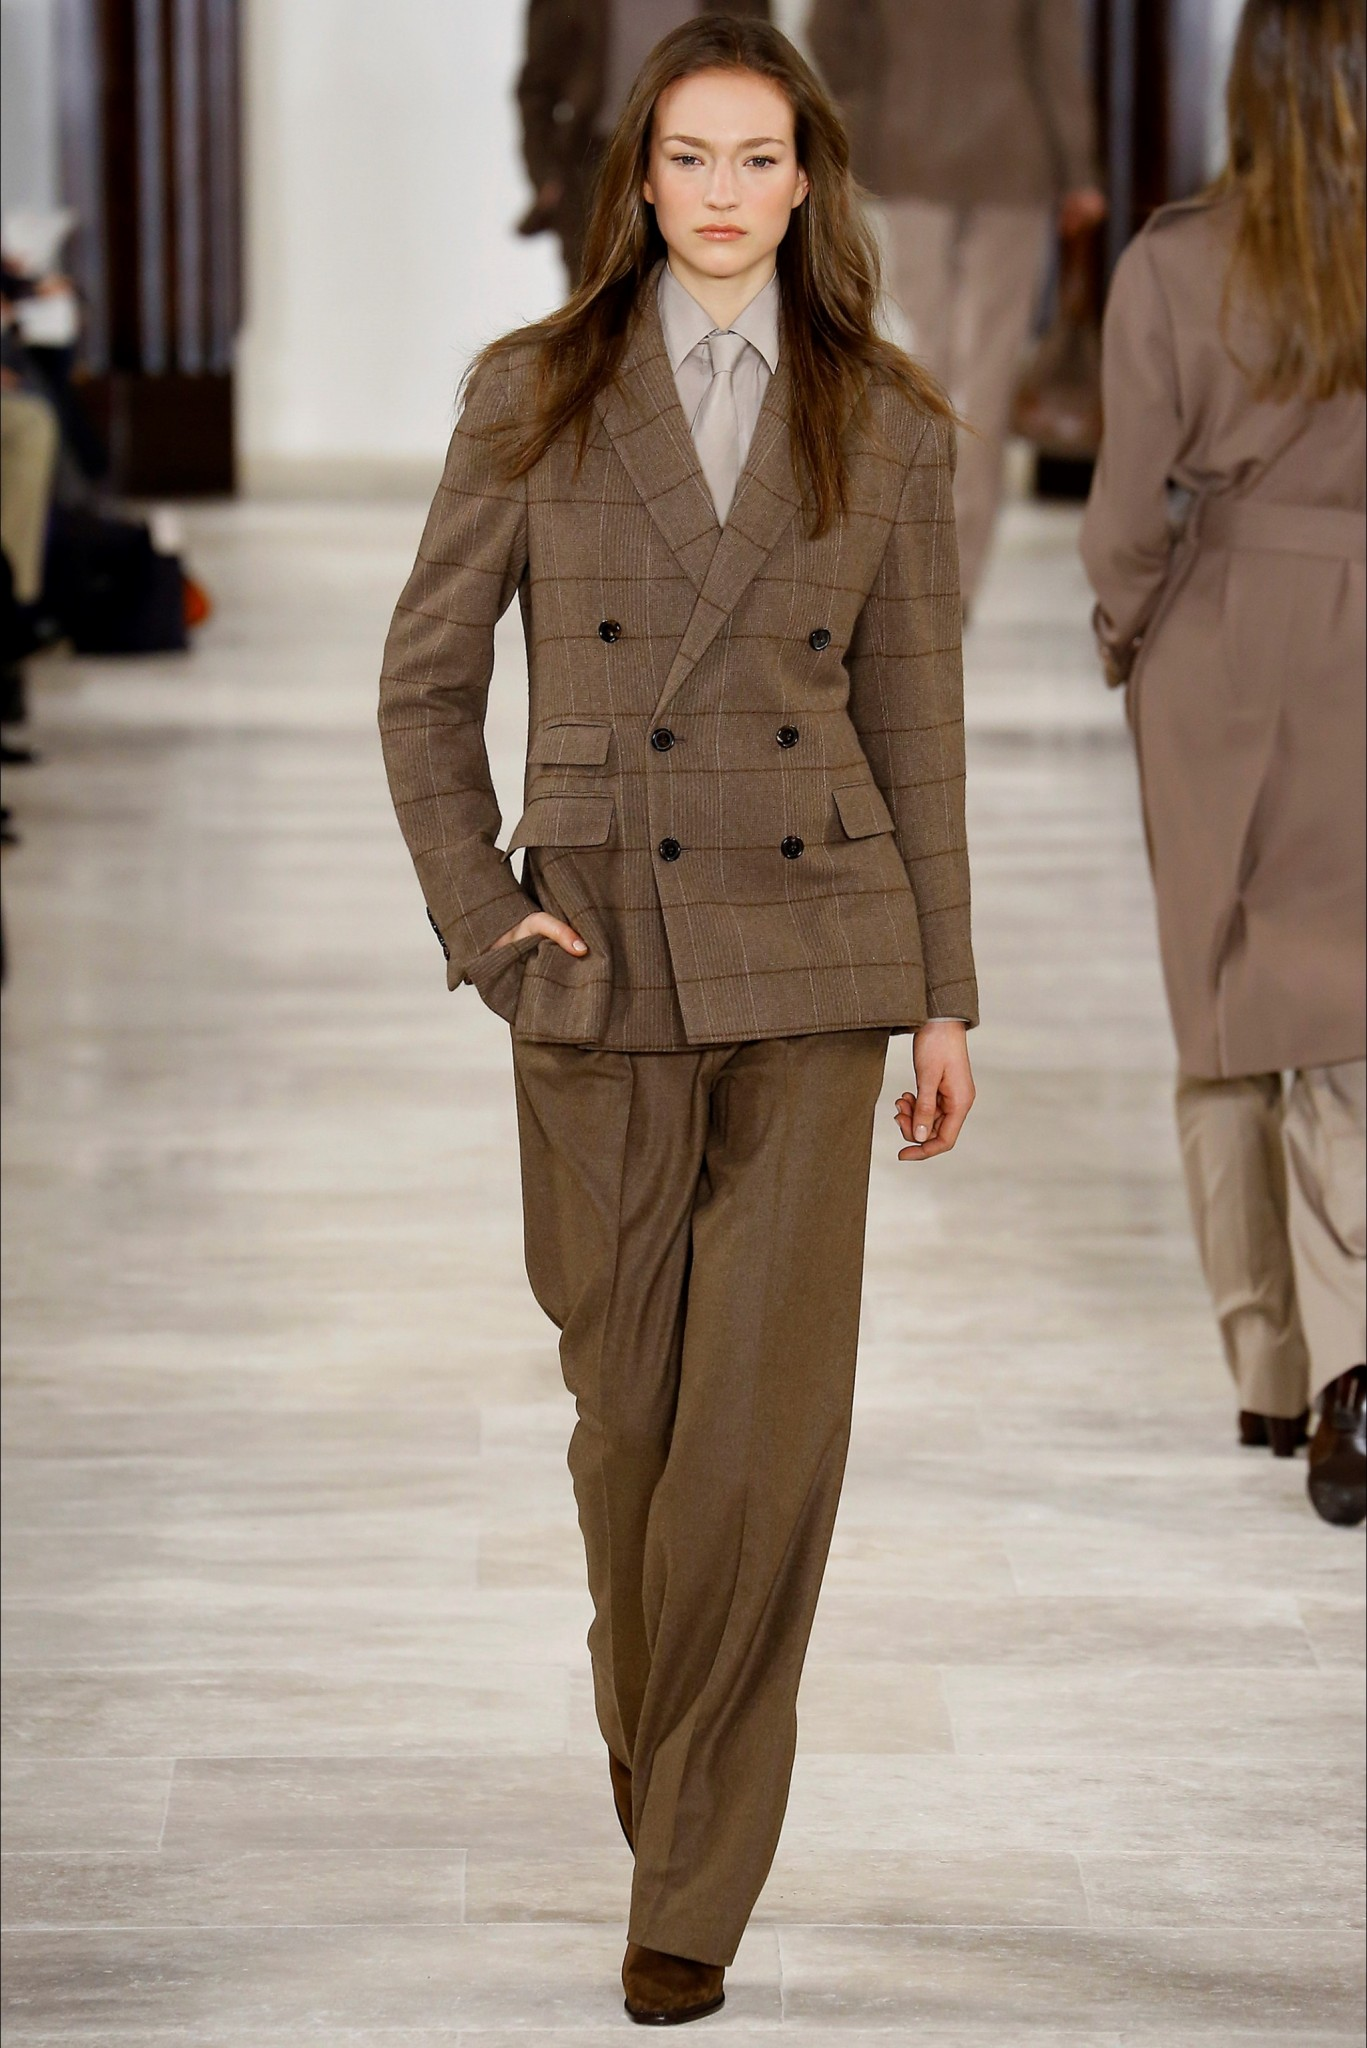 fabulous_muses_suits-ralph-lauren_fall_winter-2016